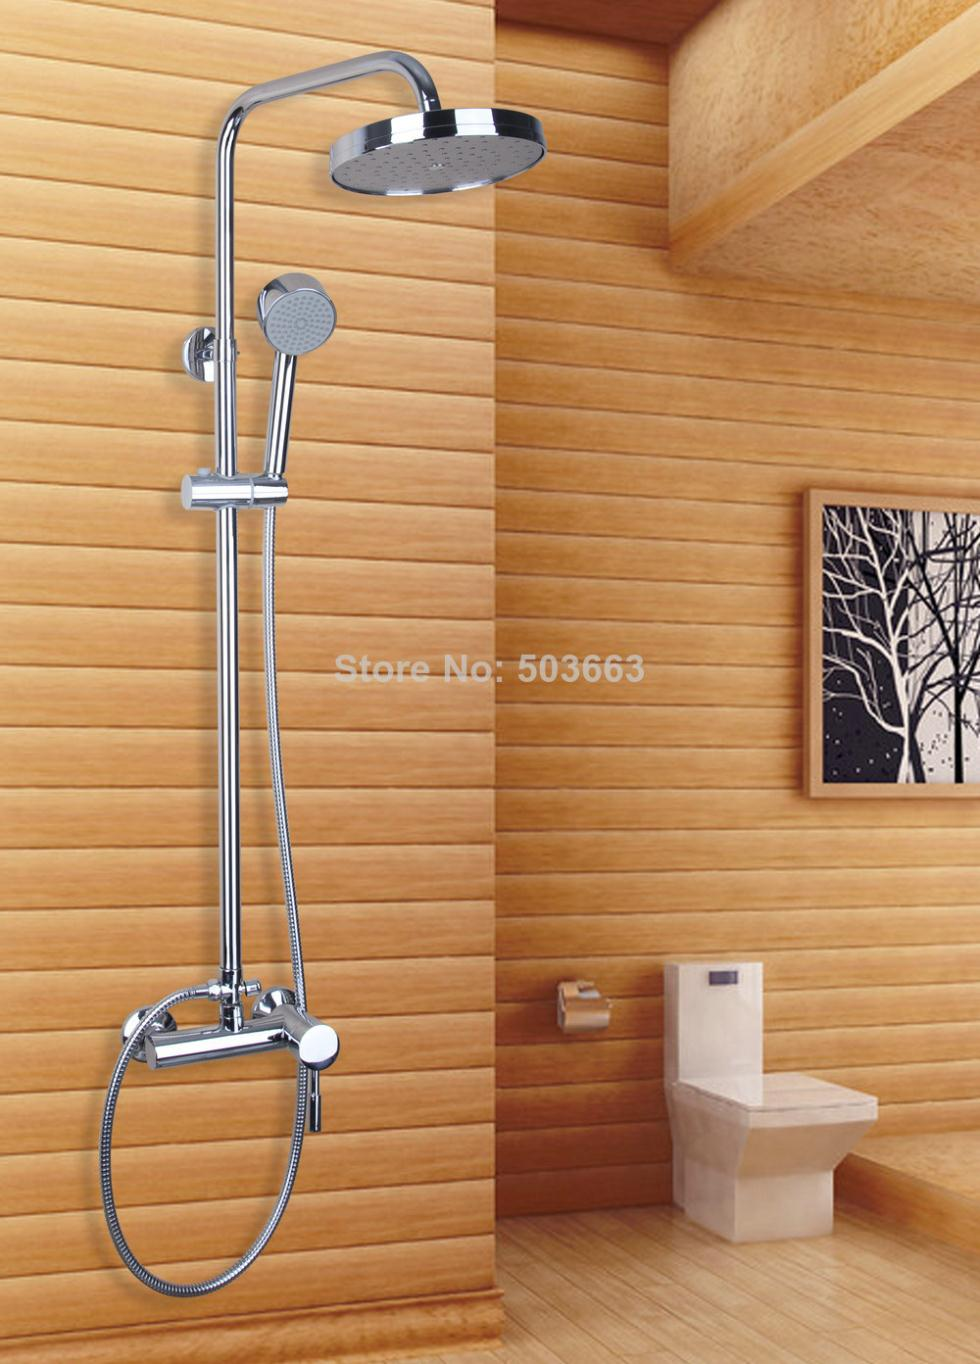 53201 Modern Bathroom Wall Mount Rain Shower Head Only Set System In Faucets From Home Improvement On Aliexpress Alibaba Group